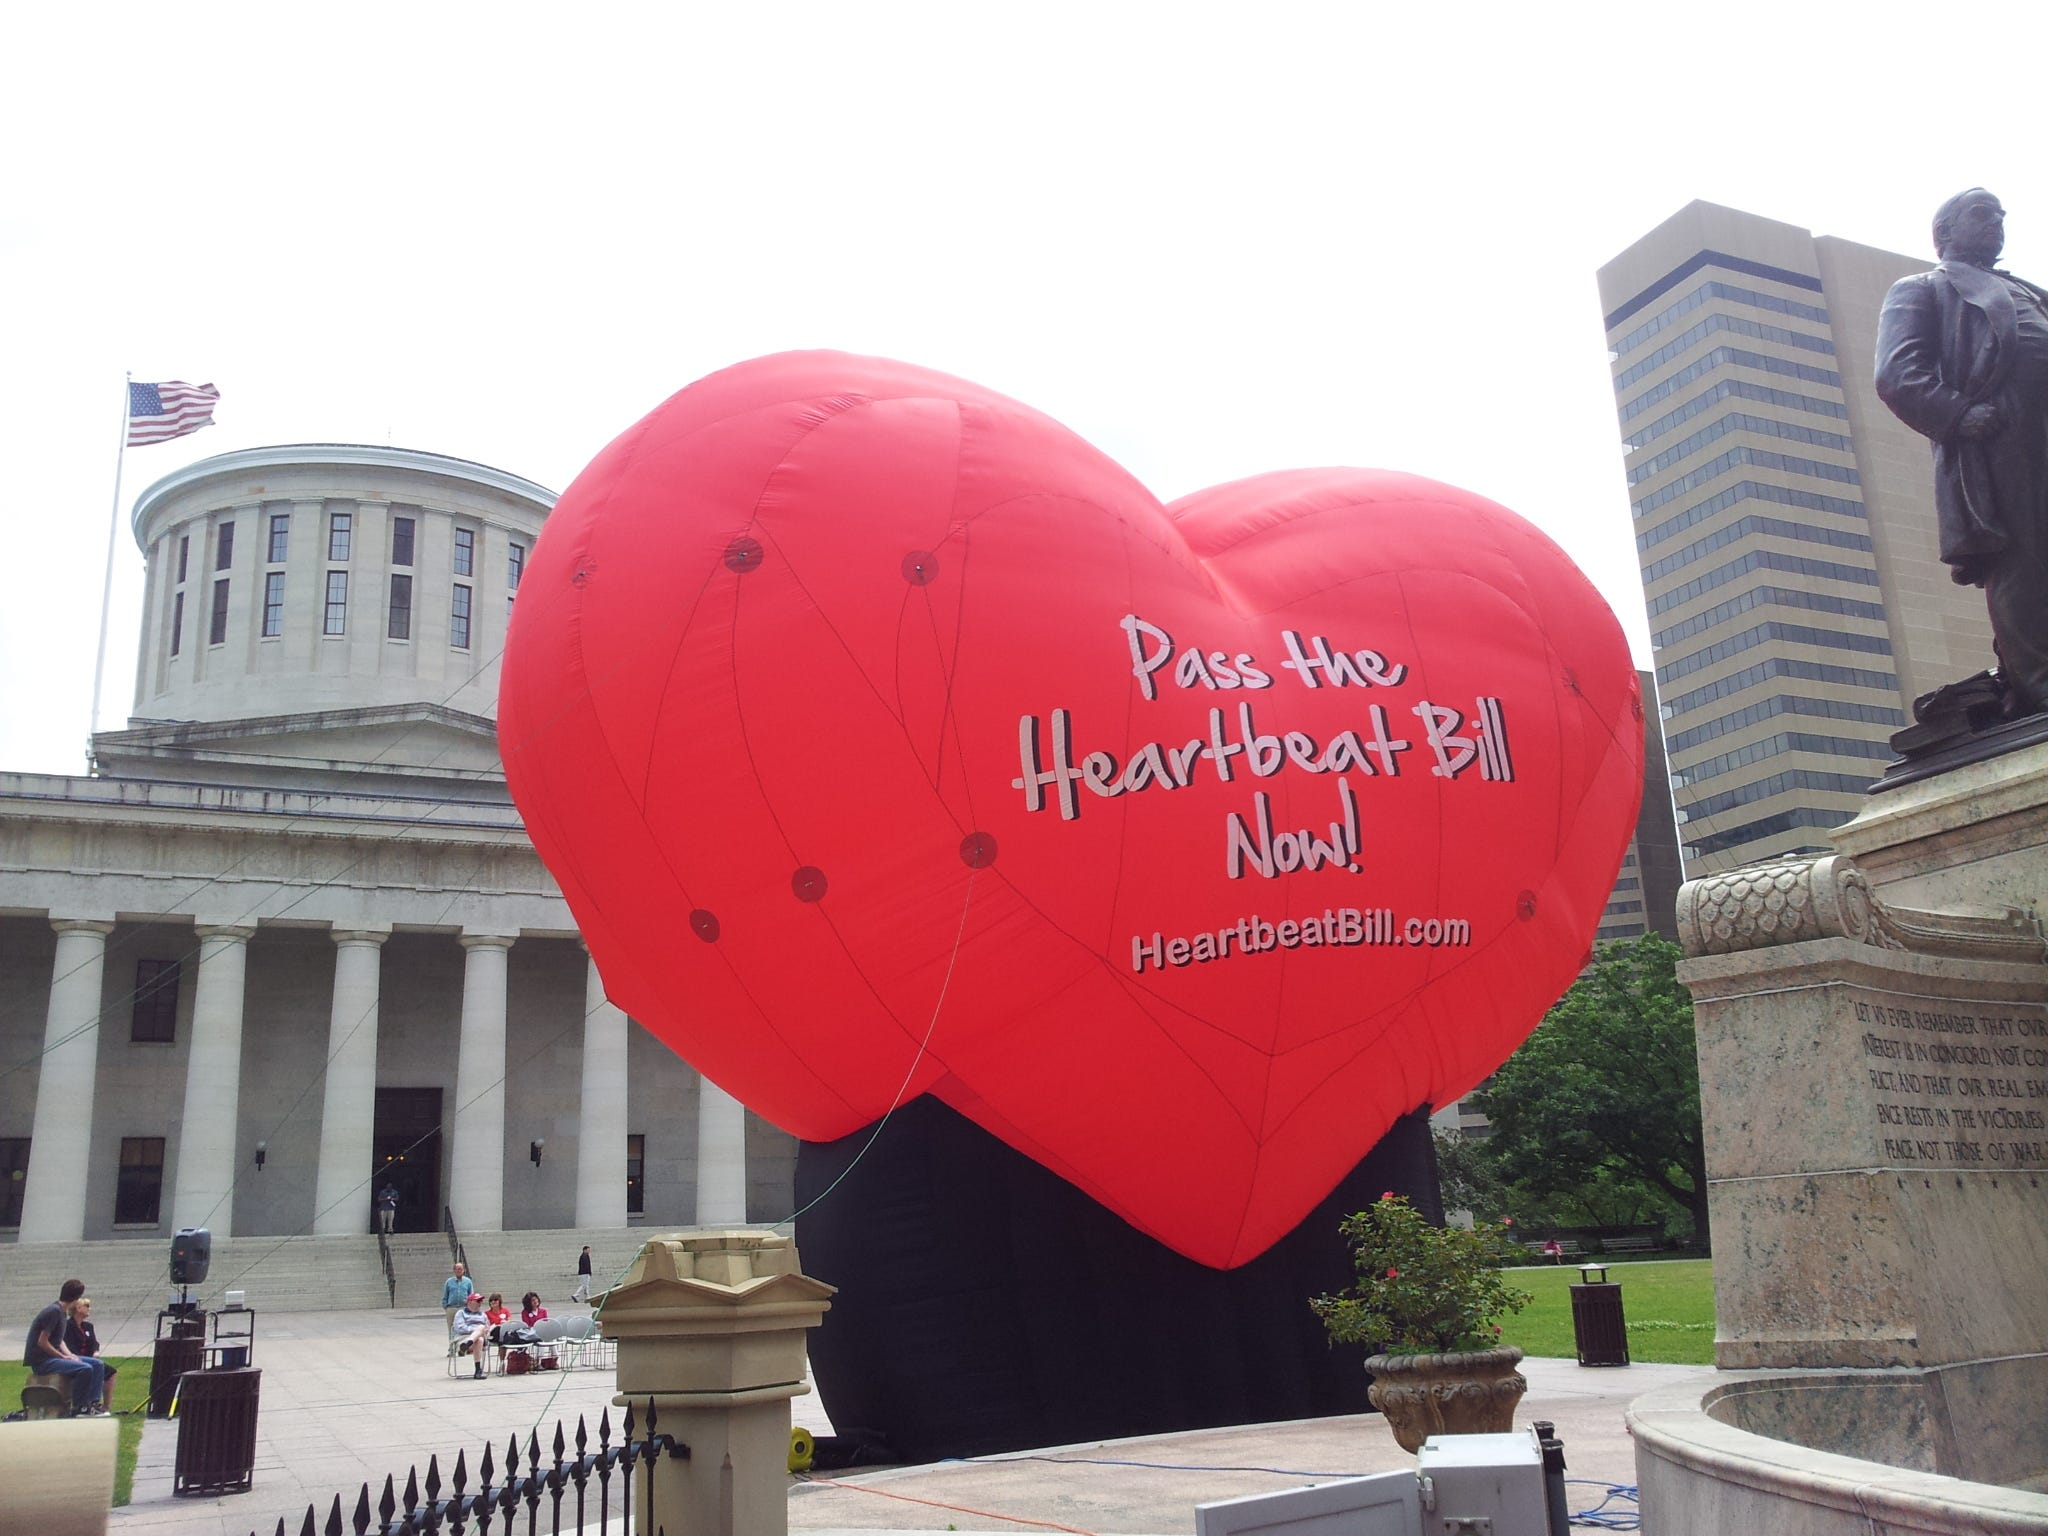 A large balloon outside the Ohio Statehouse in 2012 showed support for the Heartbeat Bill.